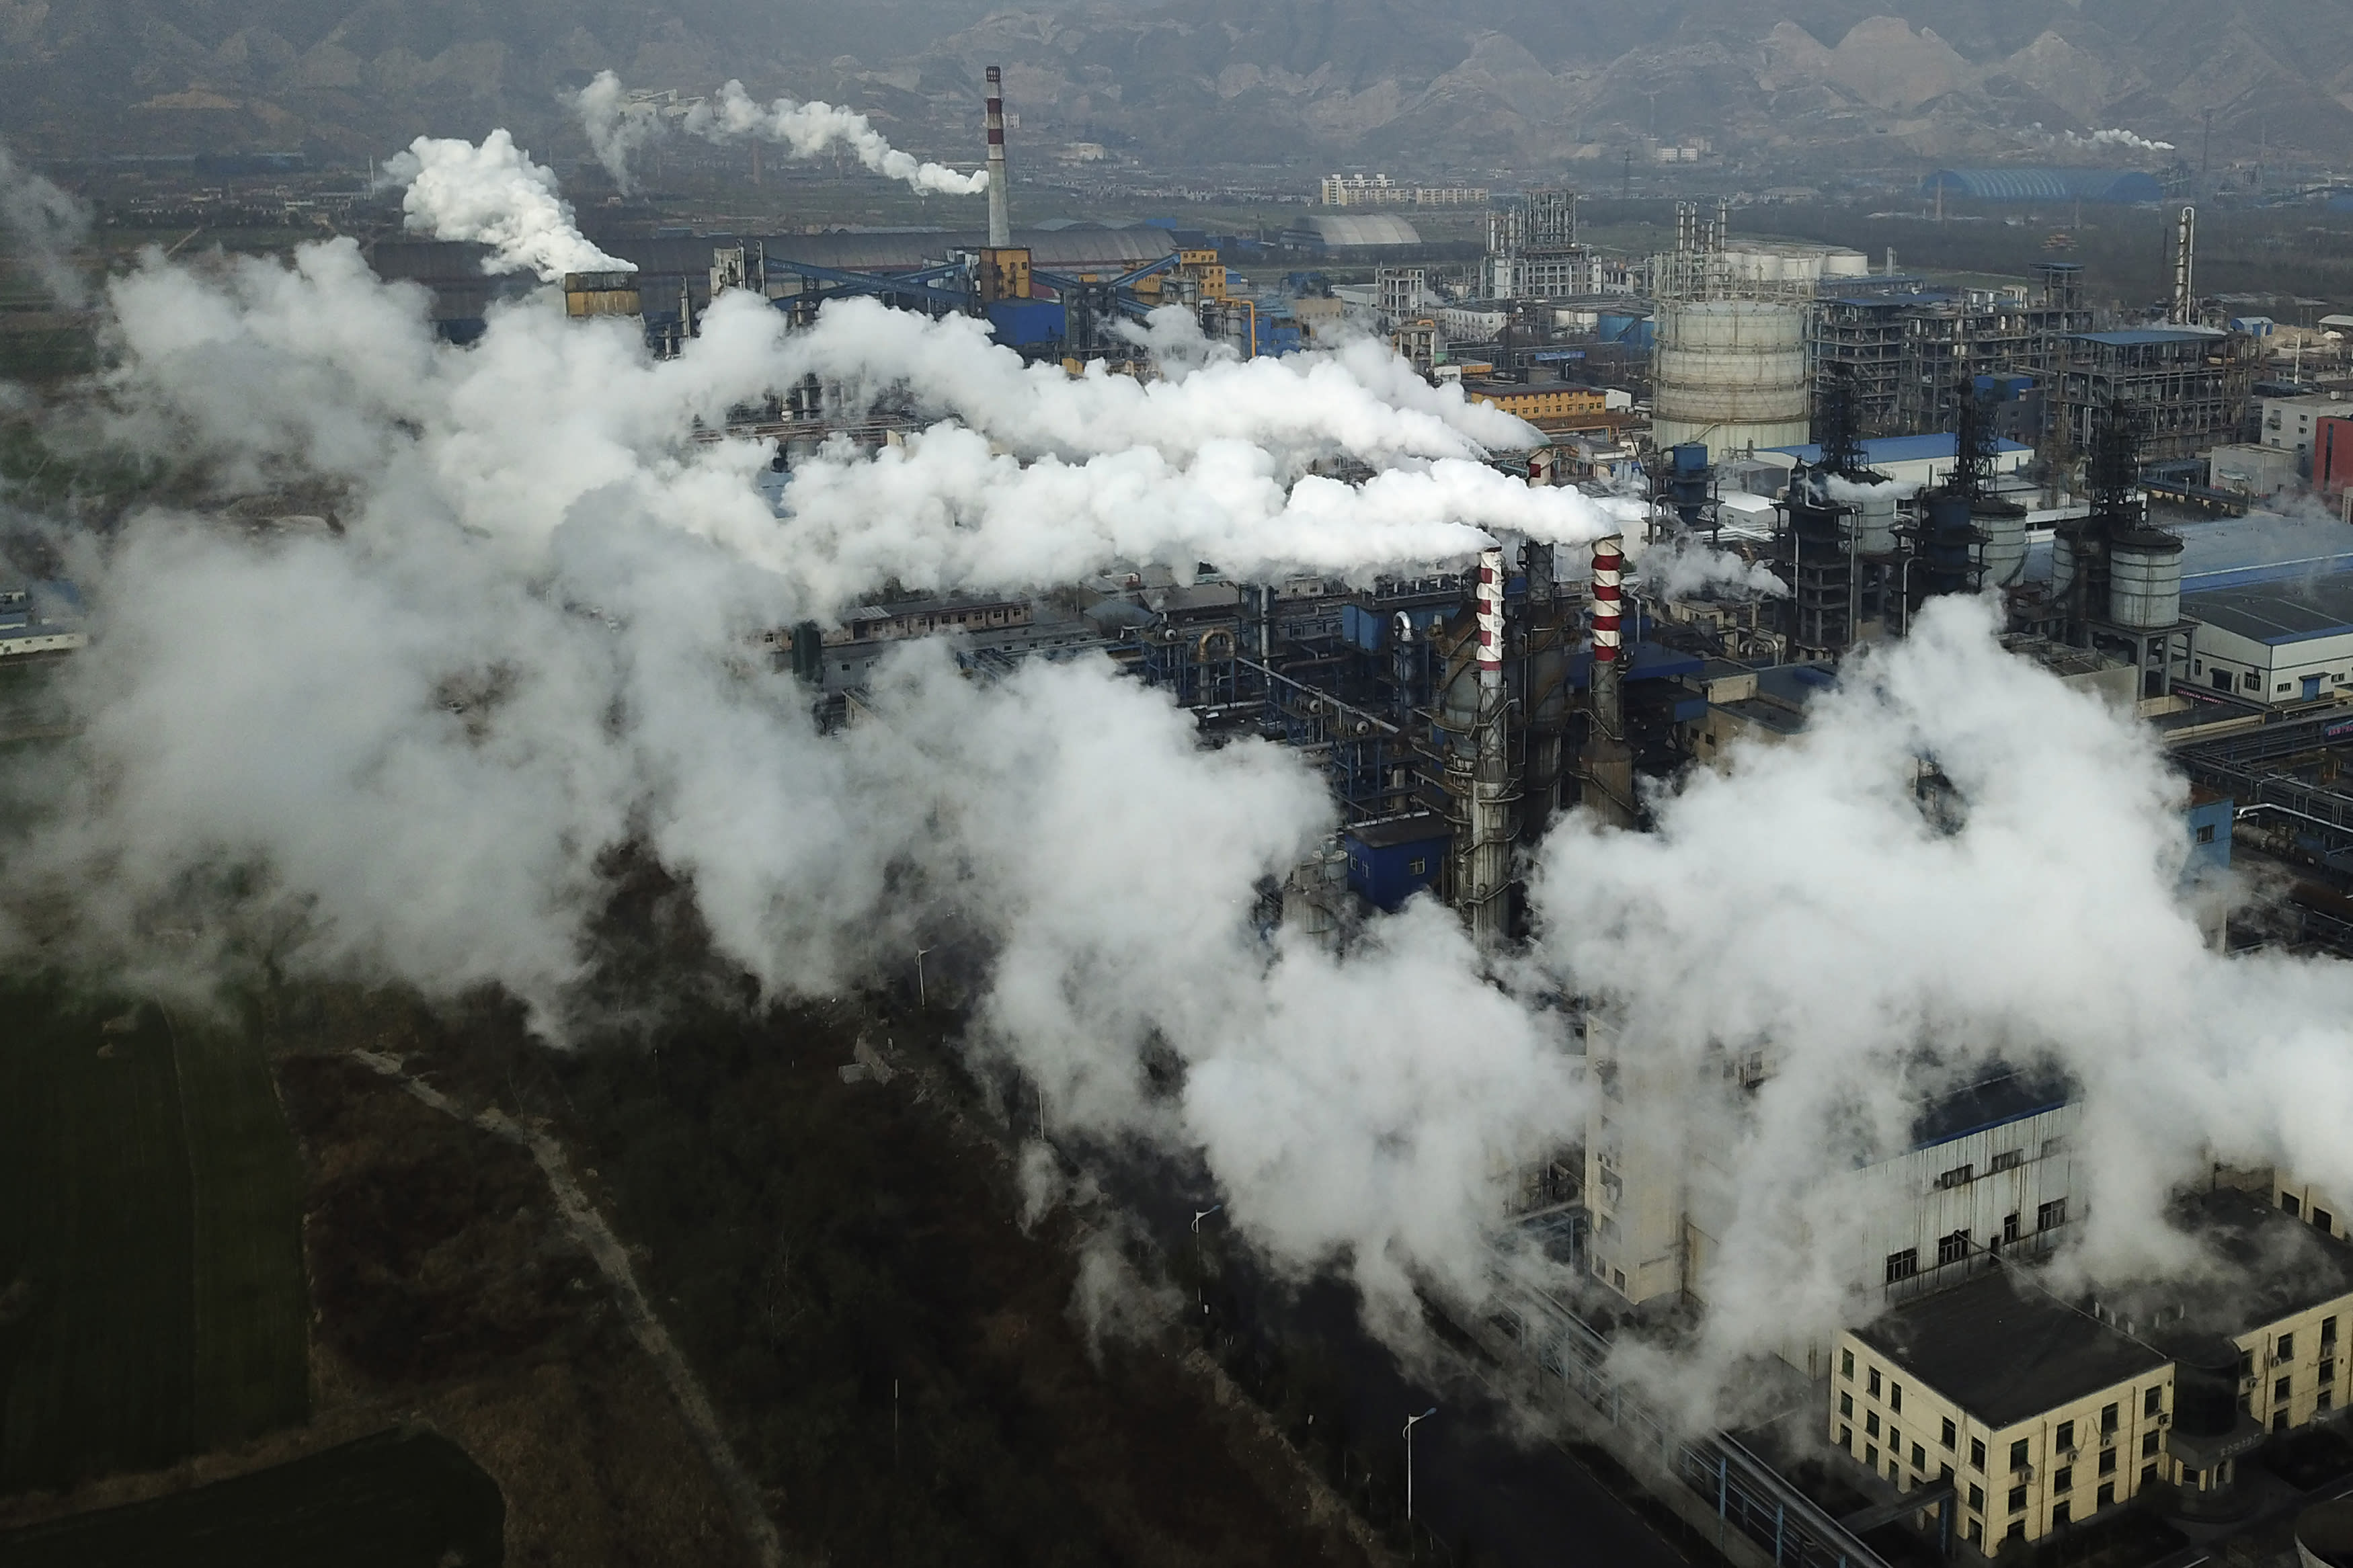 FILE - In this Nov. 28, 2019 file photo, smoke and steam rise from a coal processing plant in Hejin in central China's Shanxi Province. Chinese President Xi Jinping says his country will aim to stop pumping additional carbon dioxide, the main global warming gas, into the atmosphere by 2060. Xi's announcement during a speech Tuesday, Sept. 22, 2020, to the U.N. General Assembly is a significant step for the world's biggest emitter of greenhouse gases and was immediately cheered by climate campaigners. (AP Photo/Sam McNeil, File)